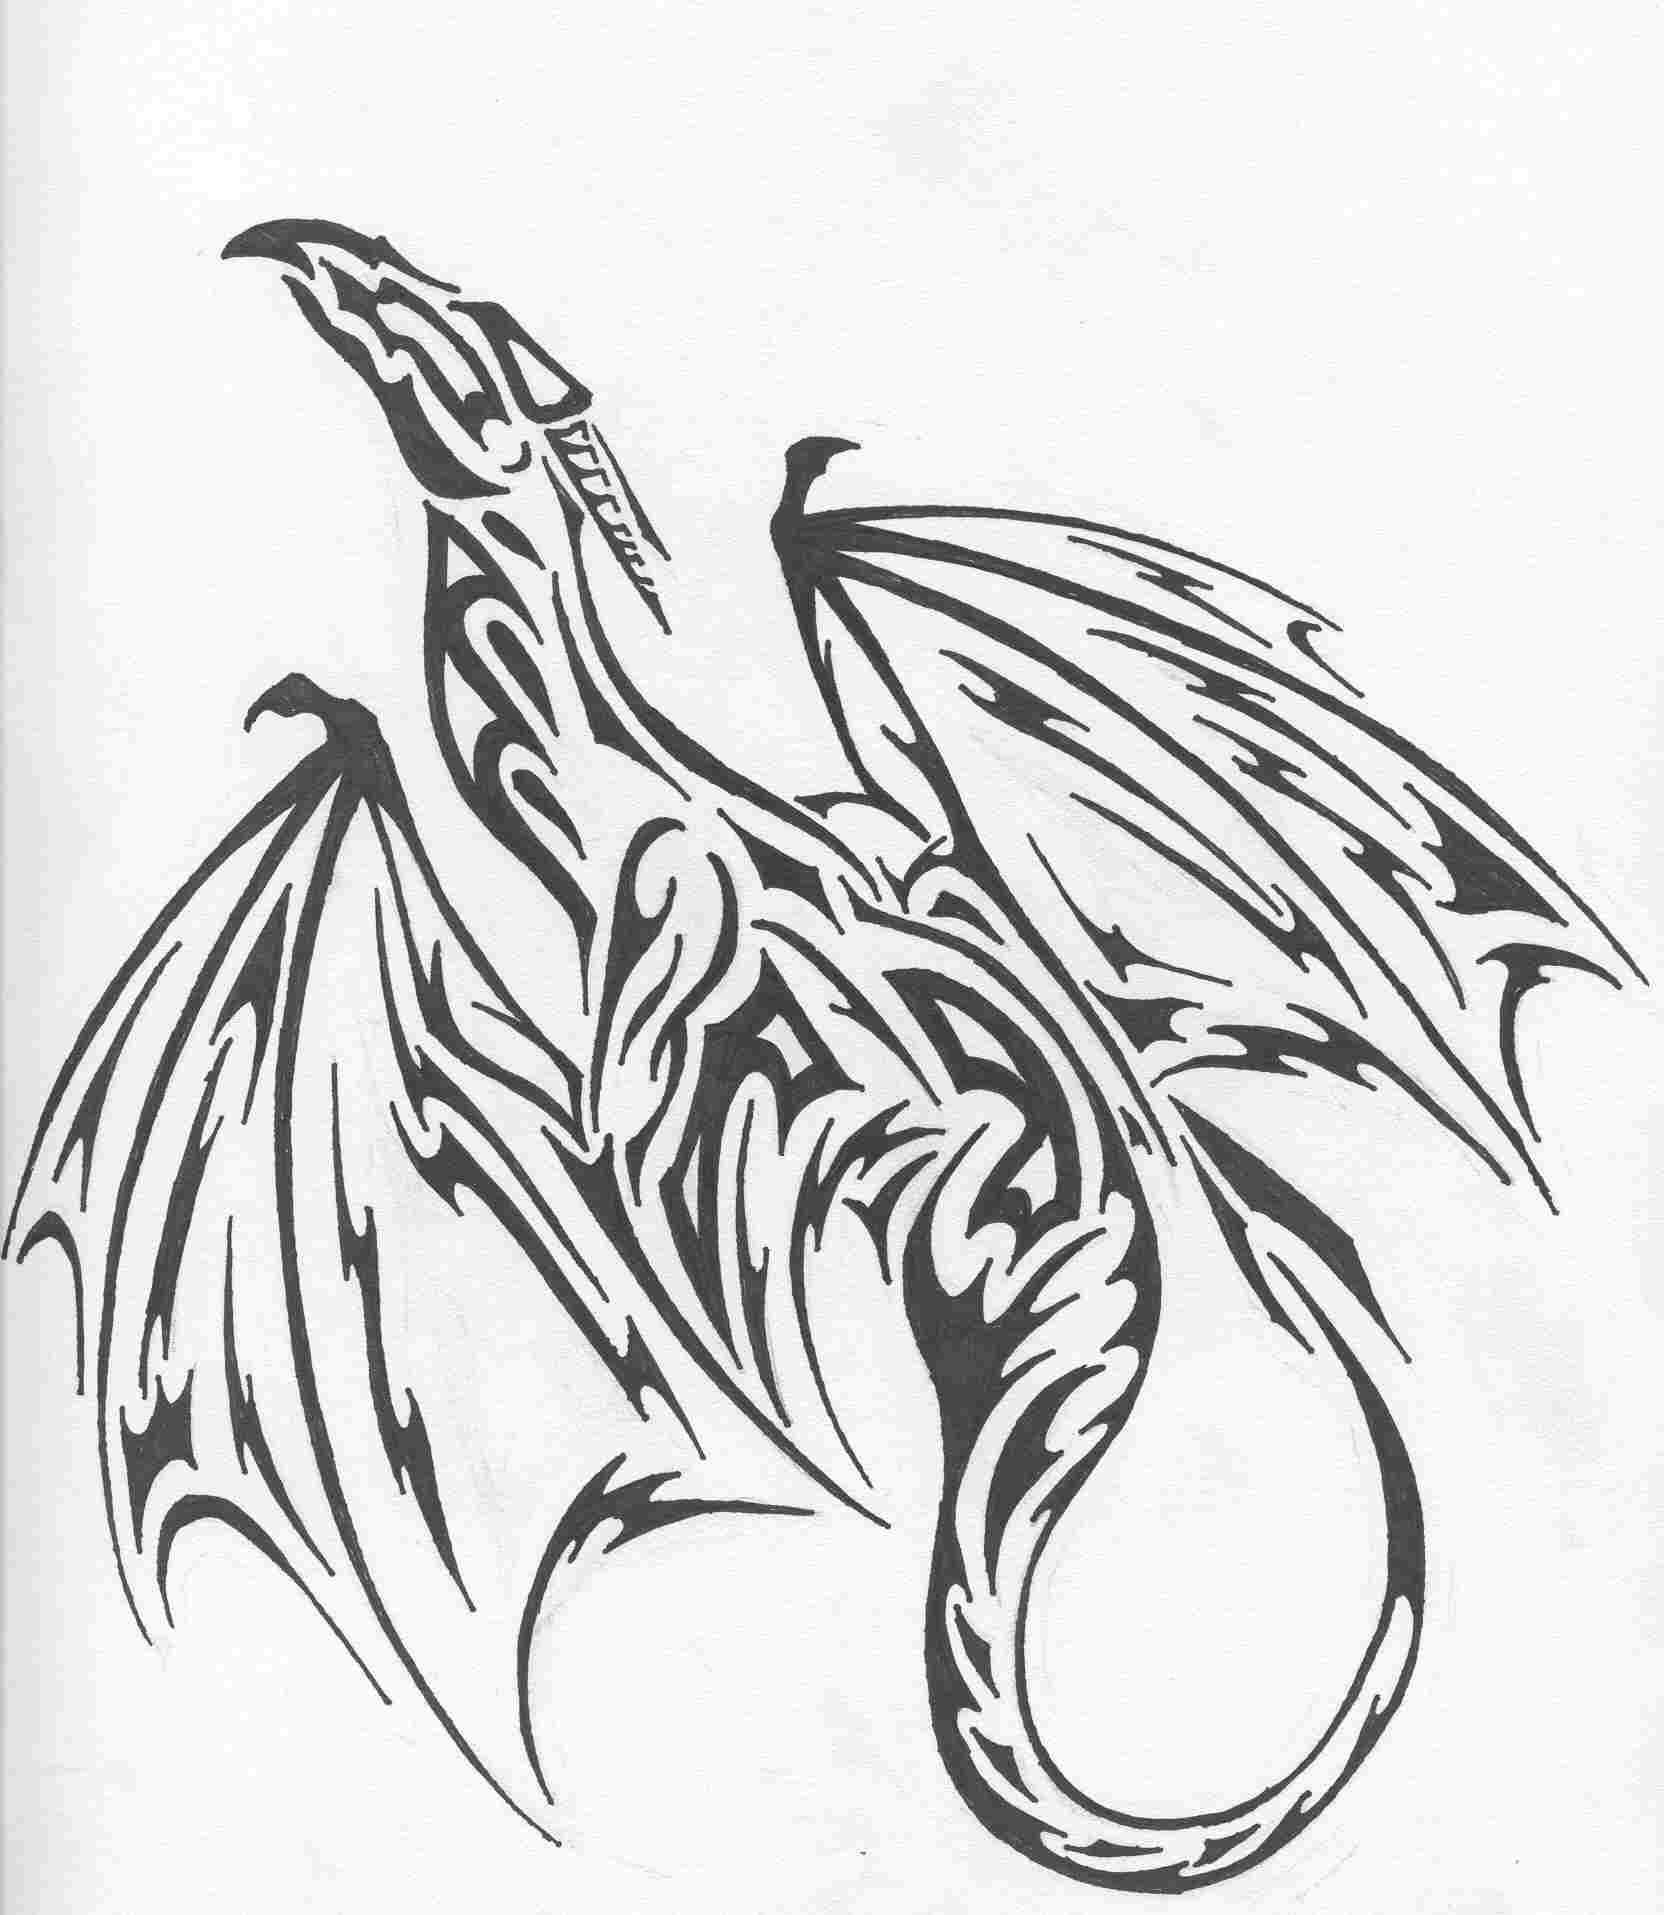 Tribal Dragon Tattoo Design If I Could I D Probably Get Ideas And Designs